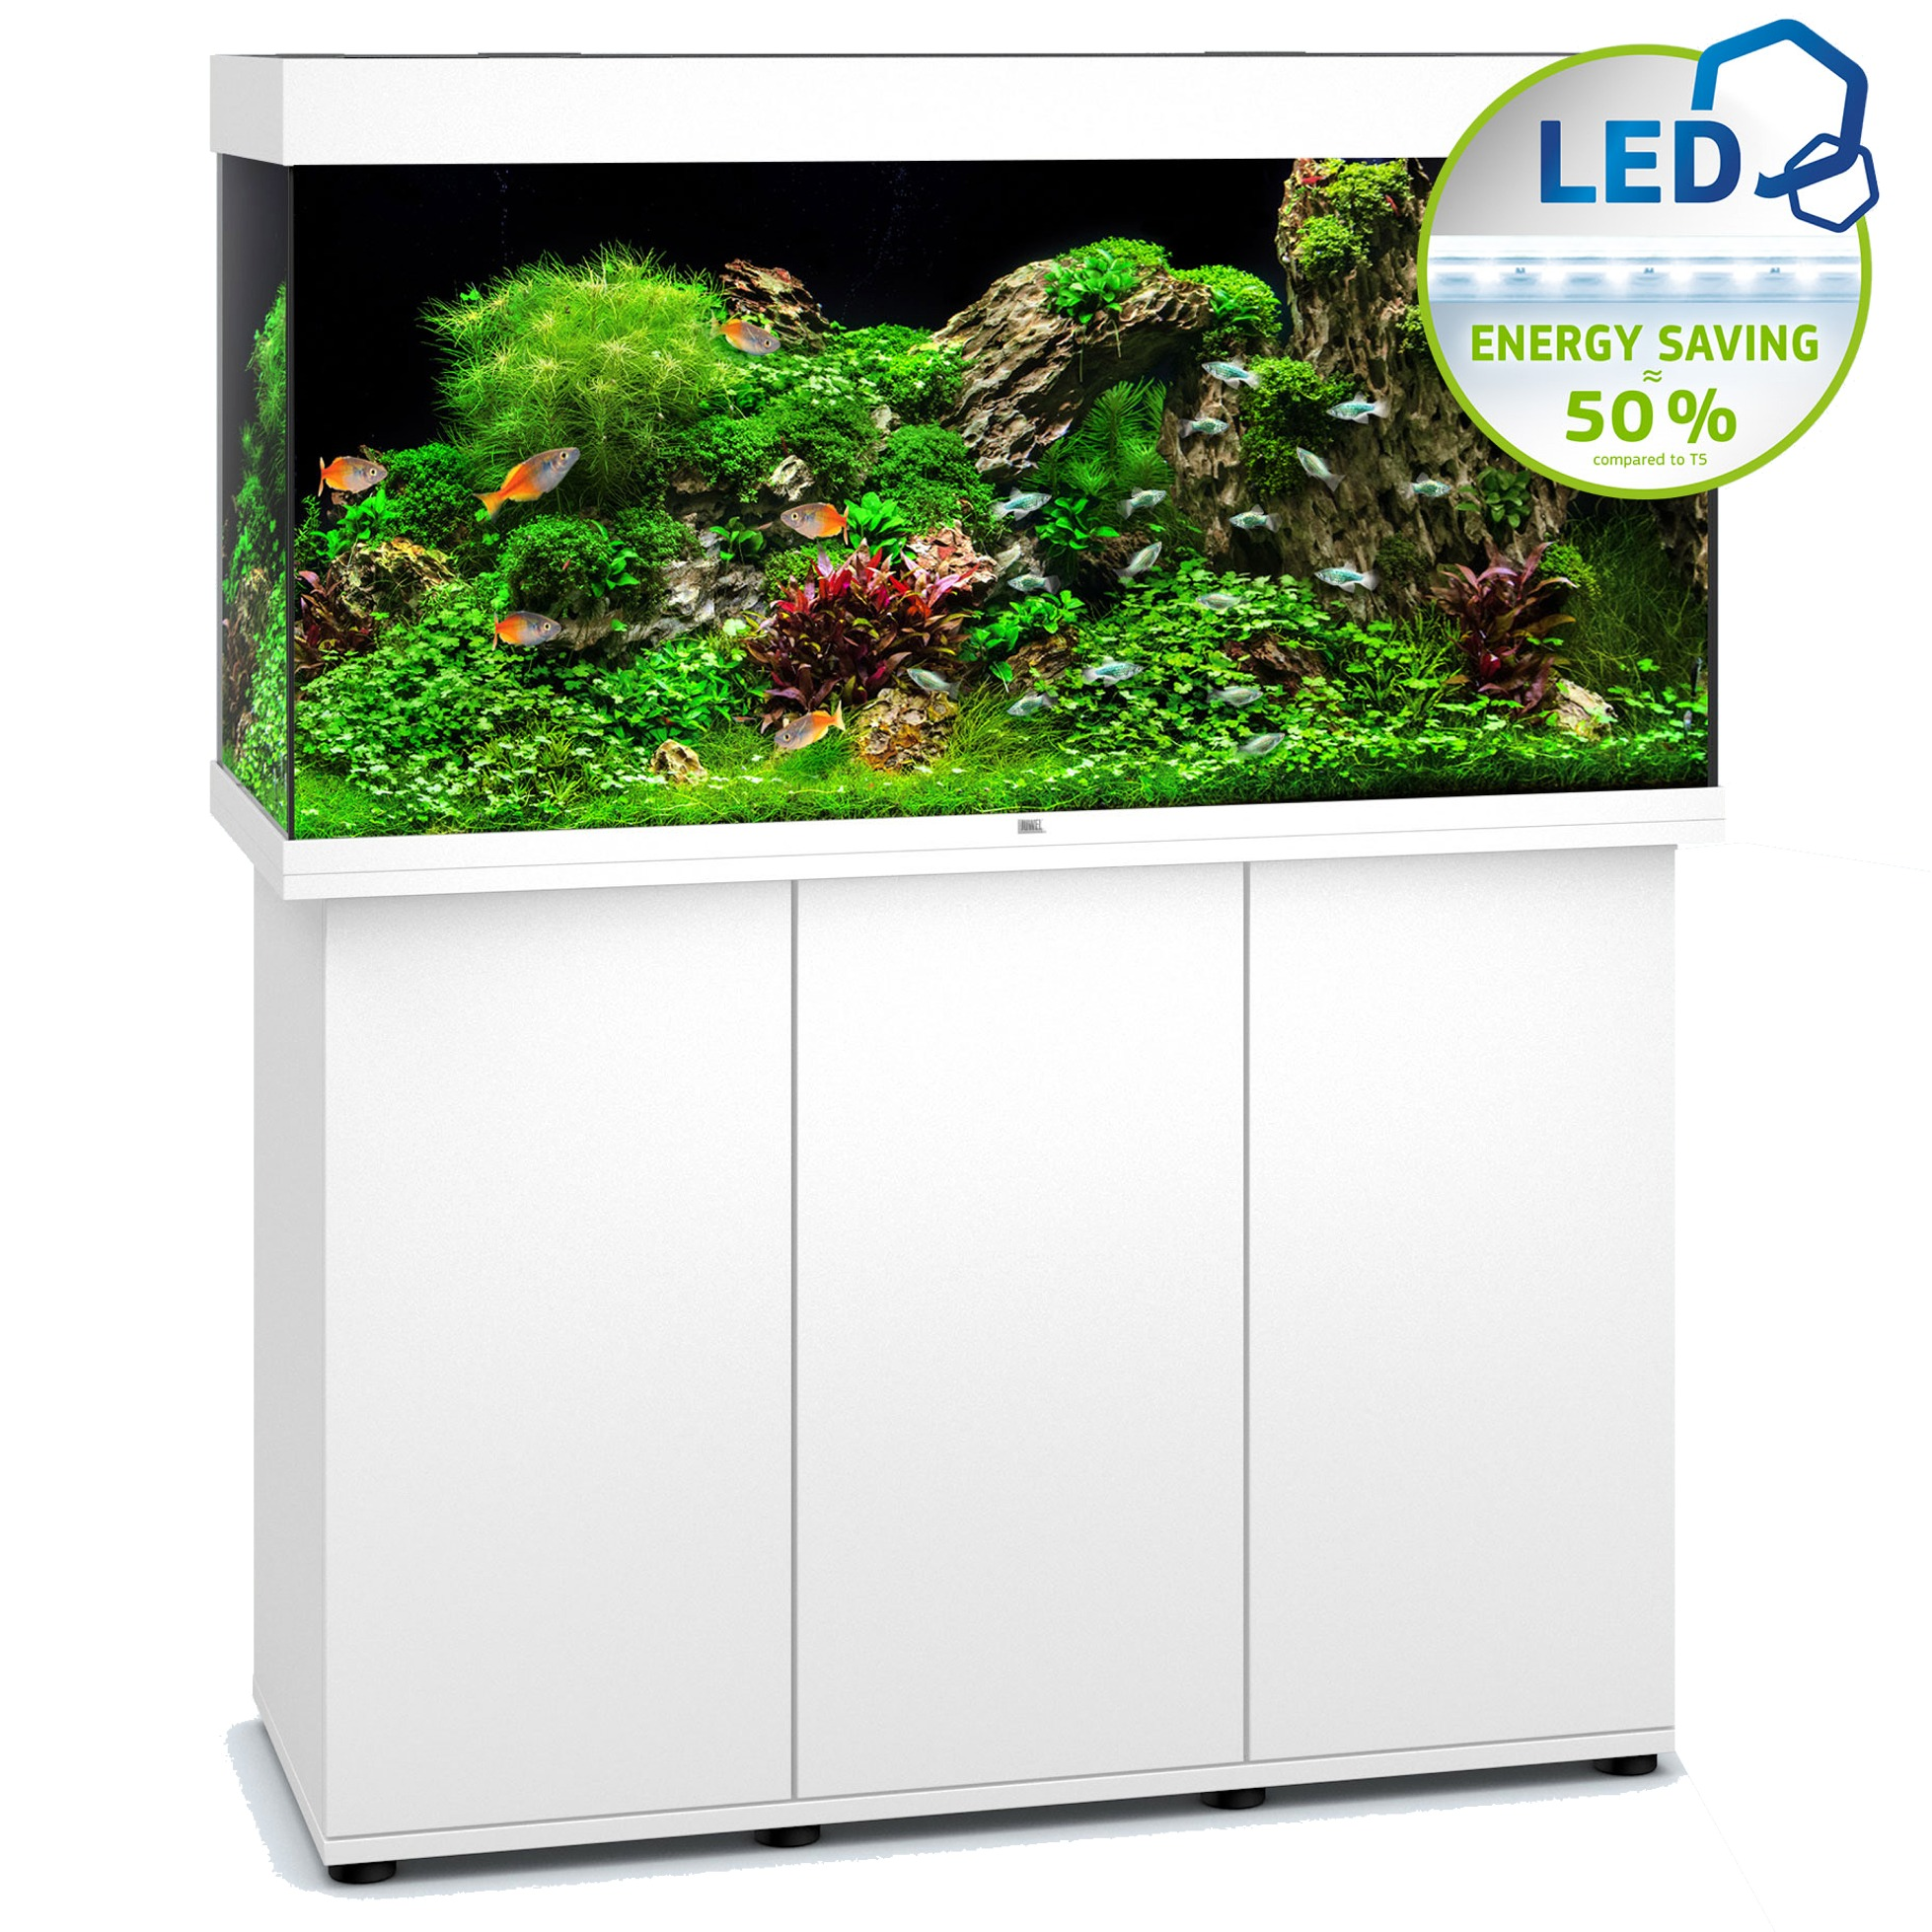 aquarium-juwel-rio-350-led-blanc Frais De Aquarium Table Basse Pas Cher